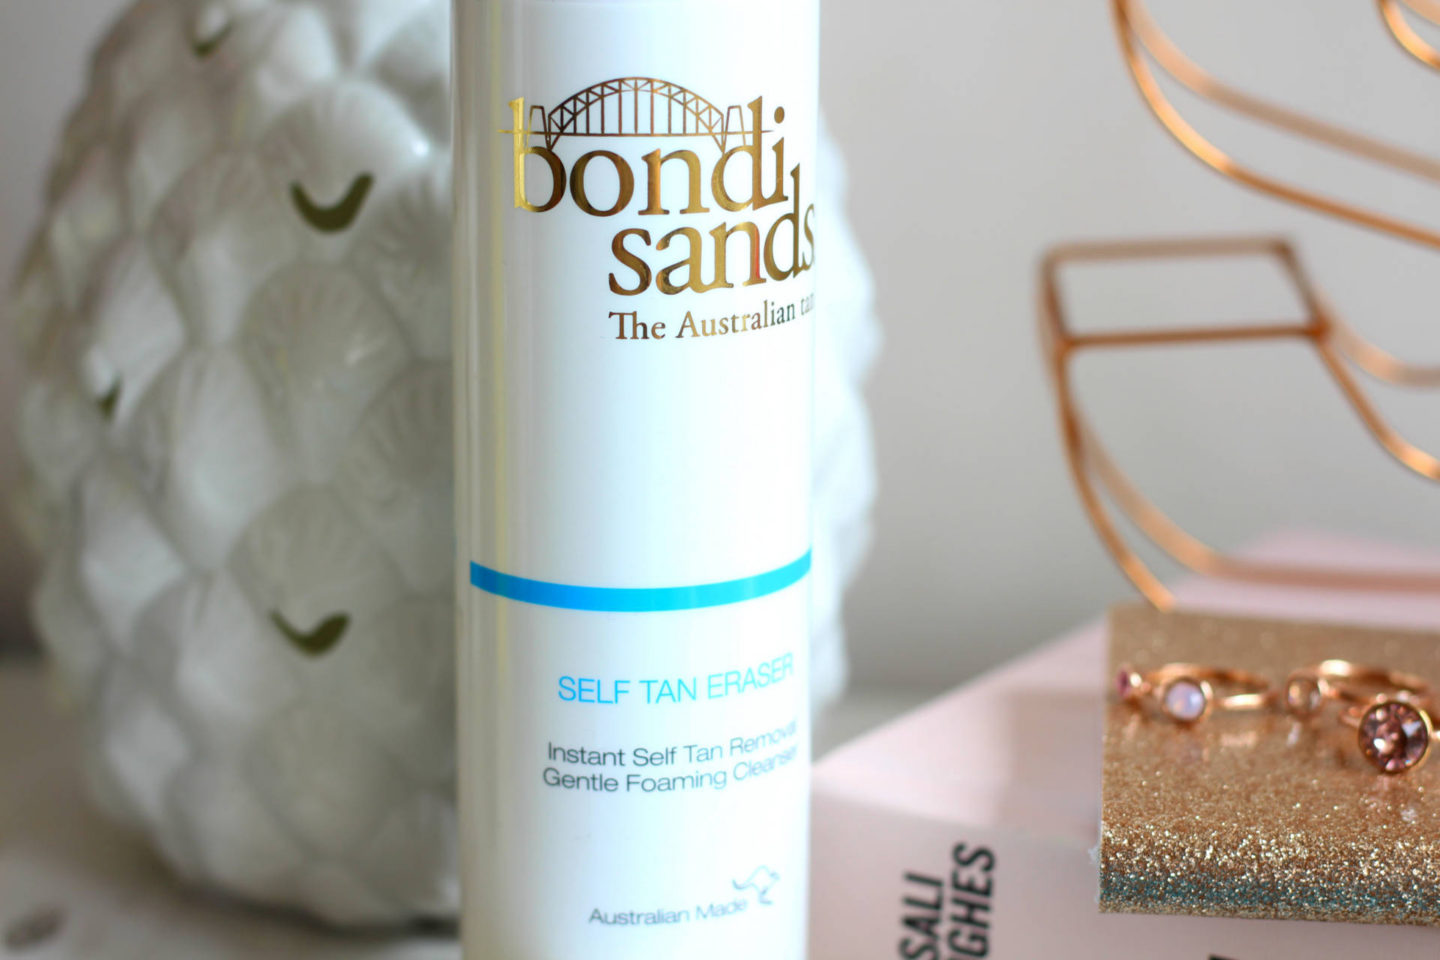 Bondi Sands Self Tan Eraser